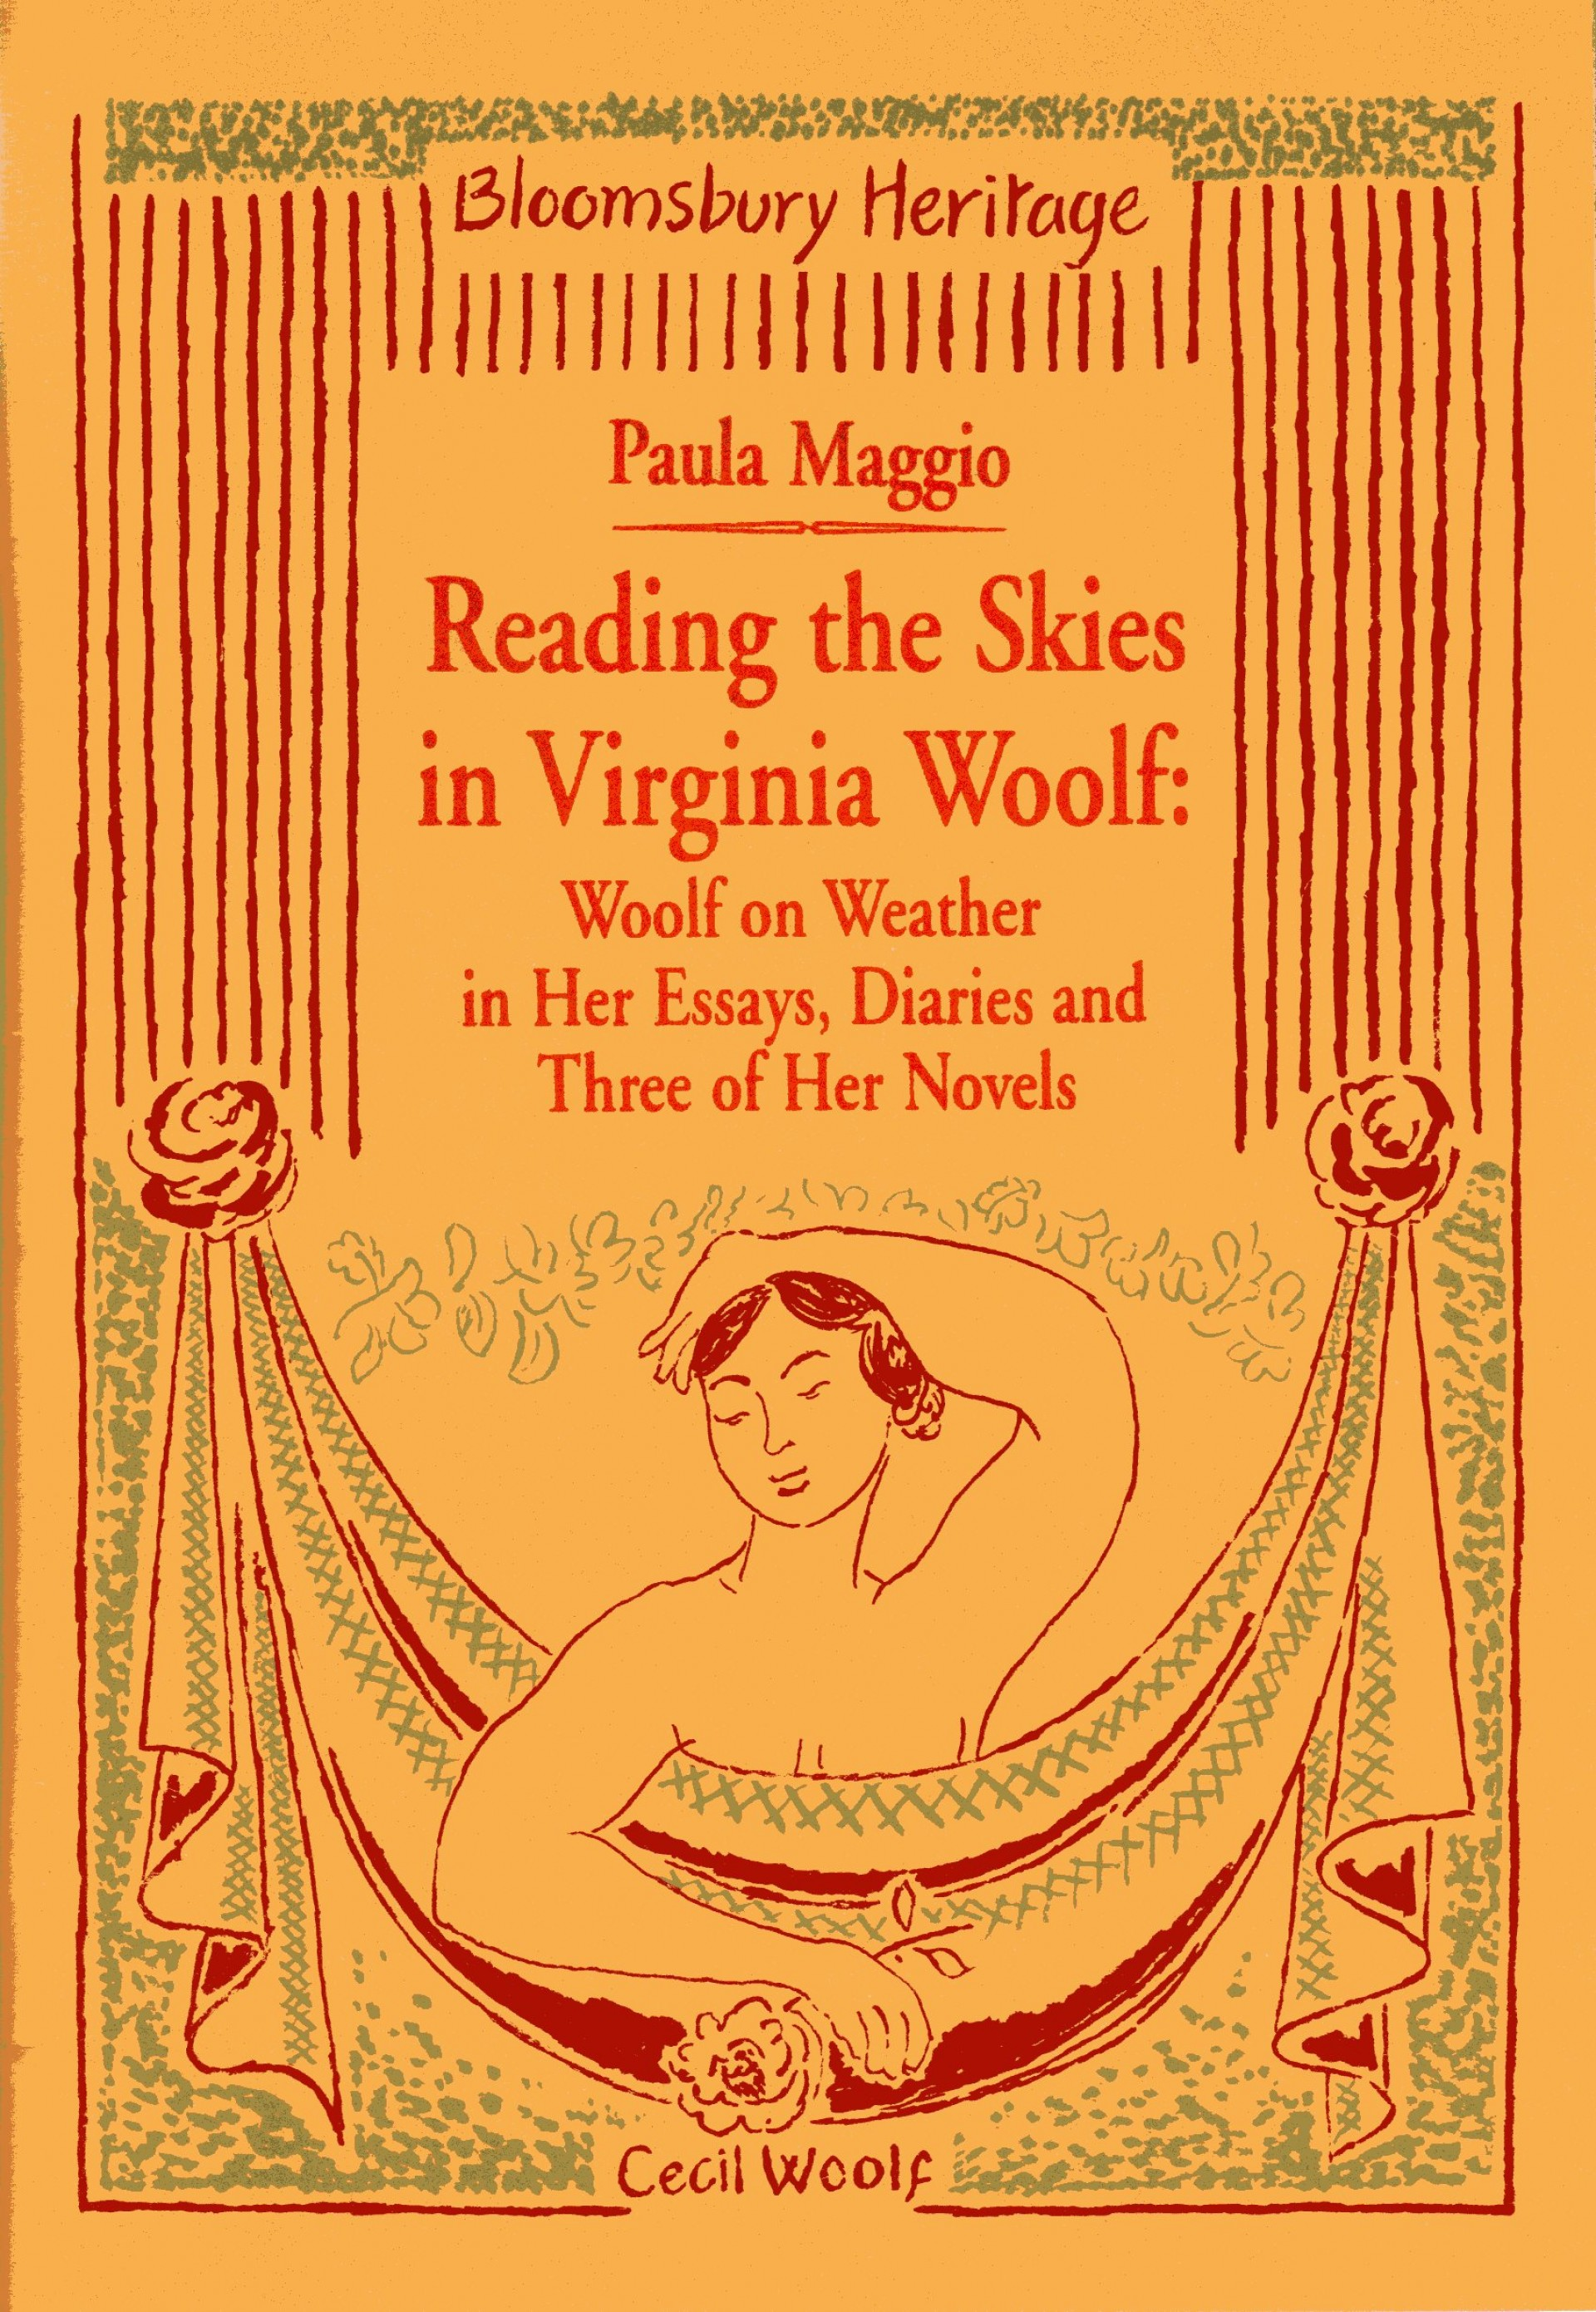 009 Reading The Skies Color016 Essay Example Virginia Woolf Unusual Essays Modern Pdf Woolf's Sketching Past Fiction Analysis 1920